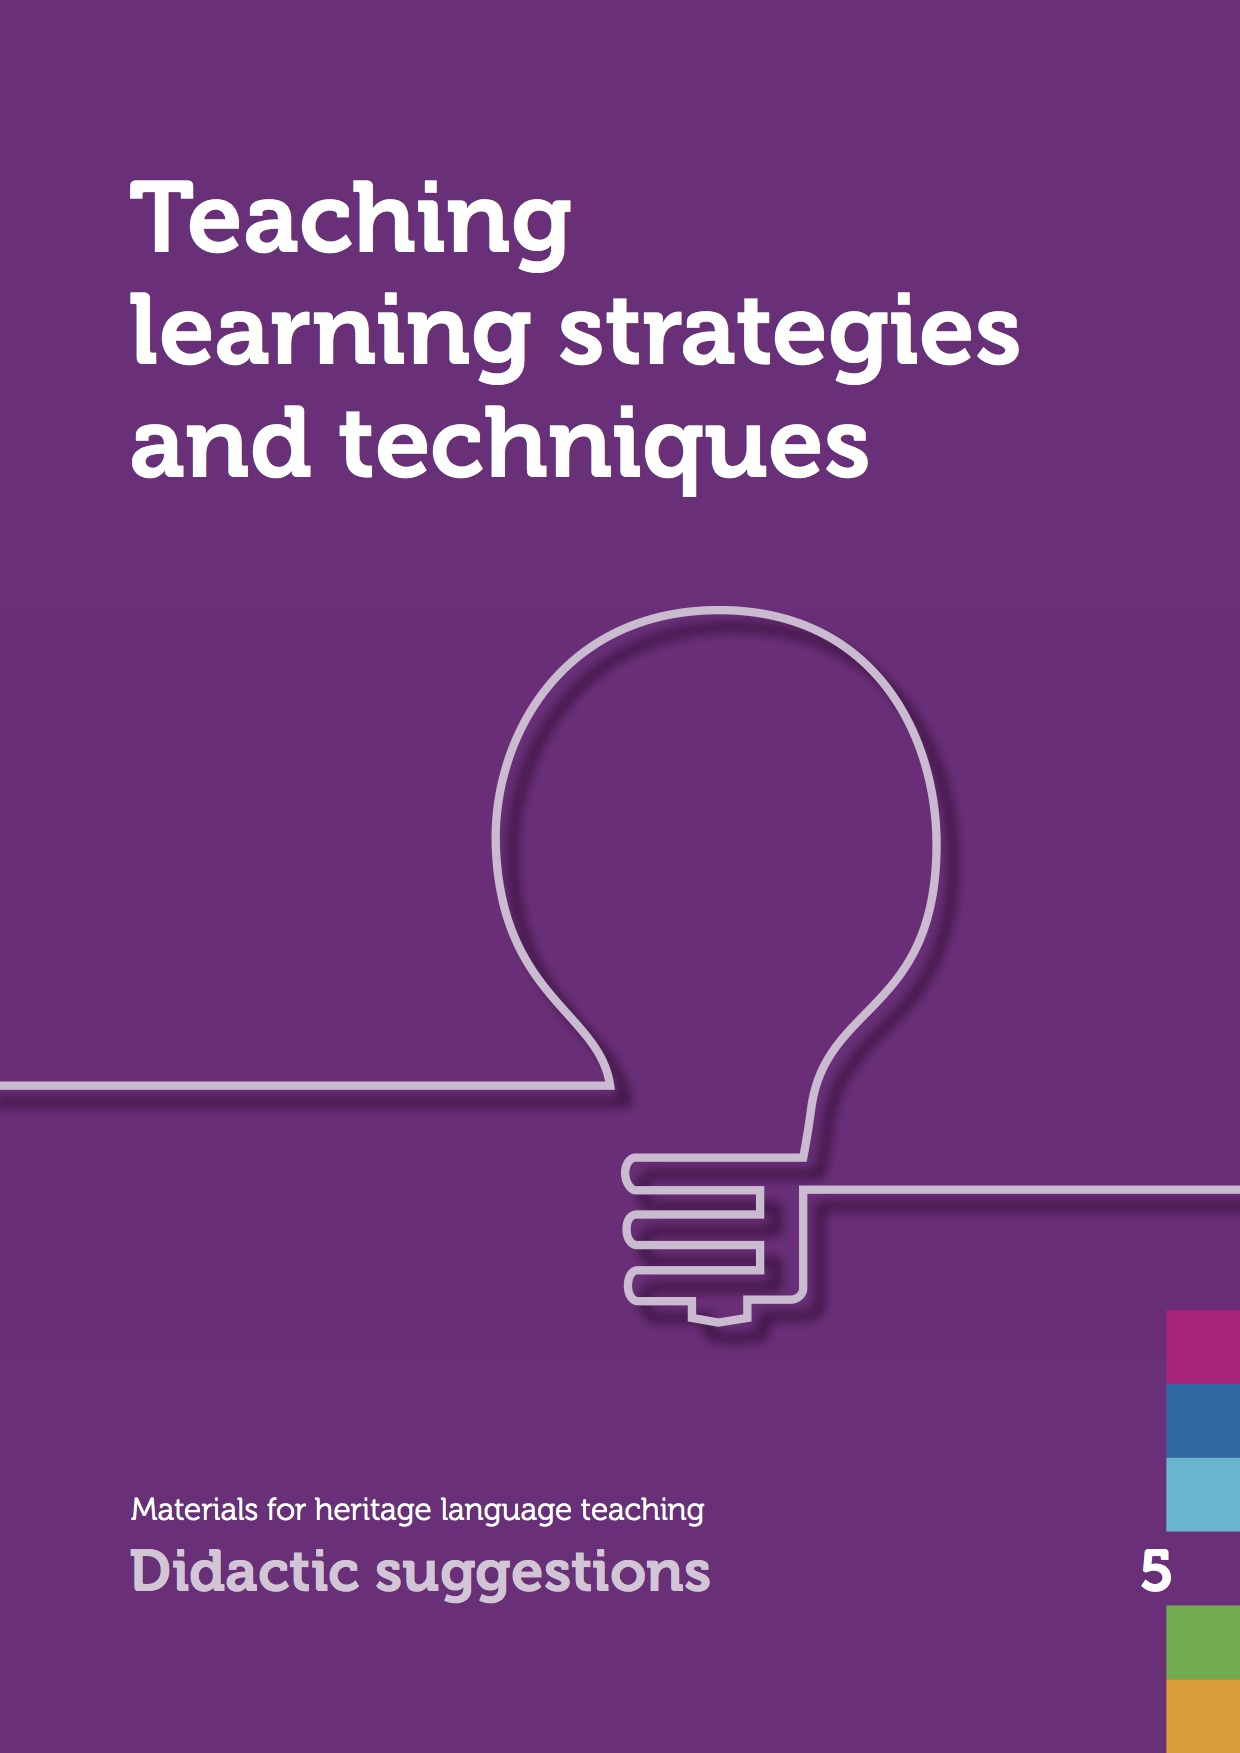 Teaching learning strategies and techniques | HLT